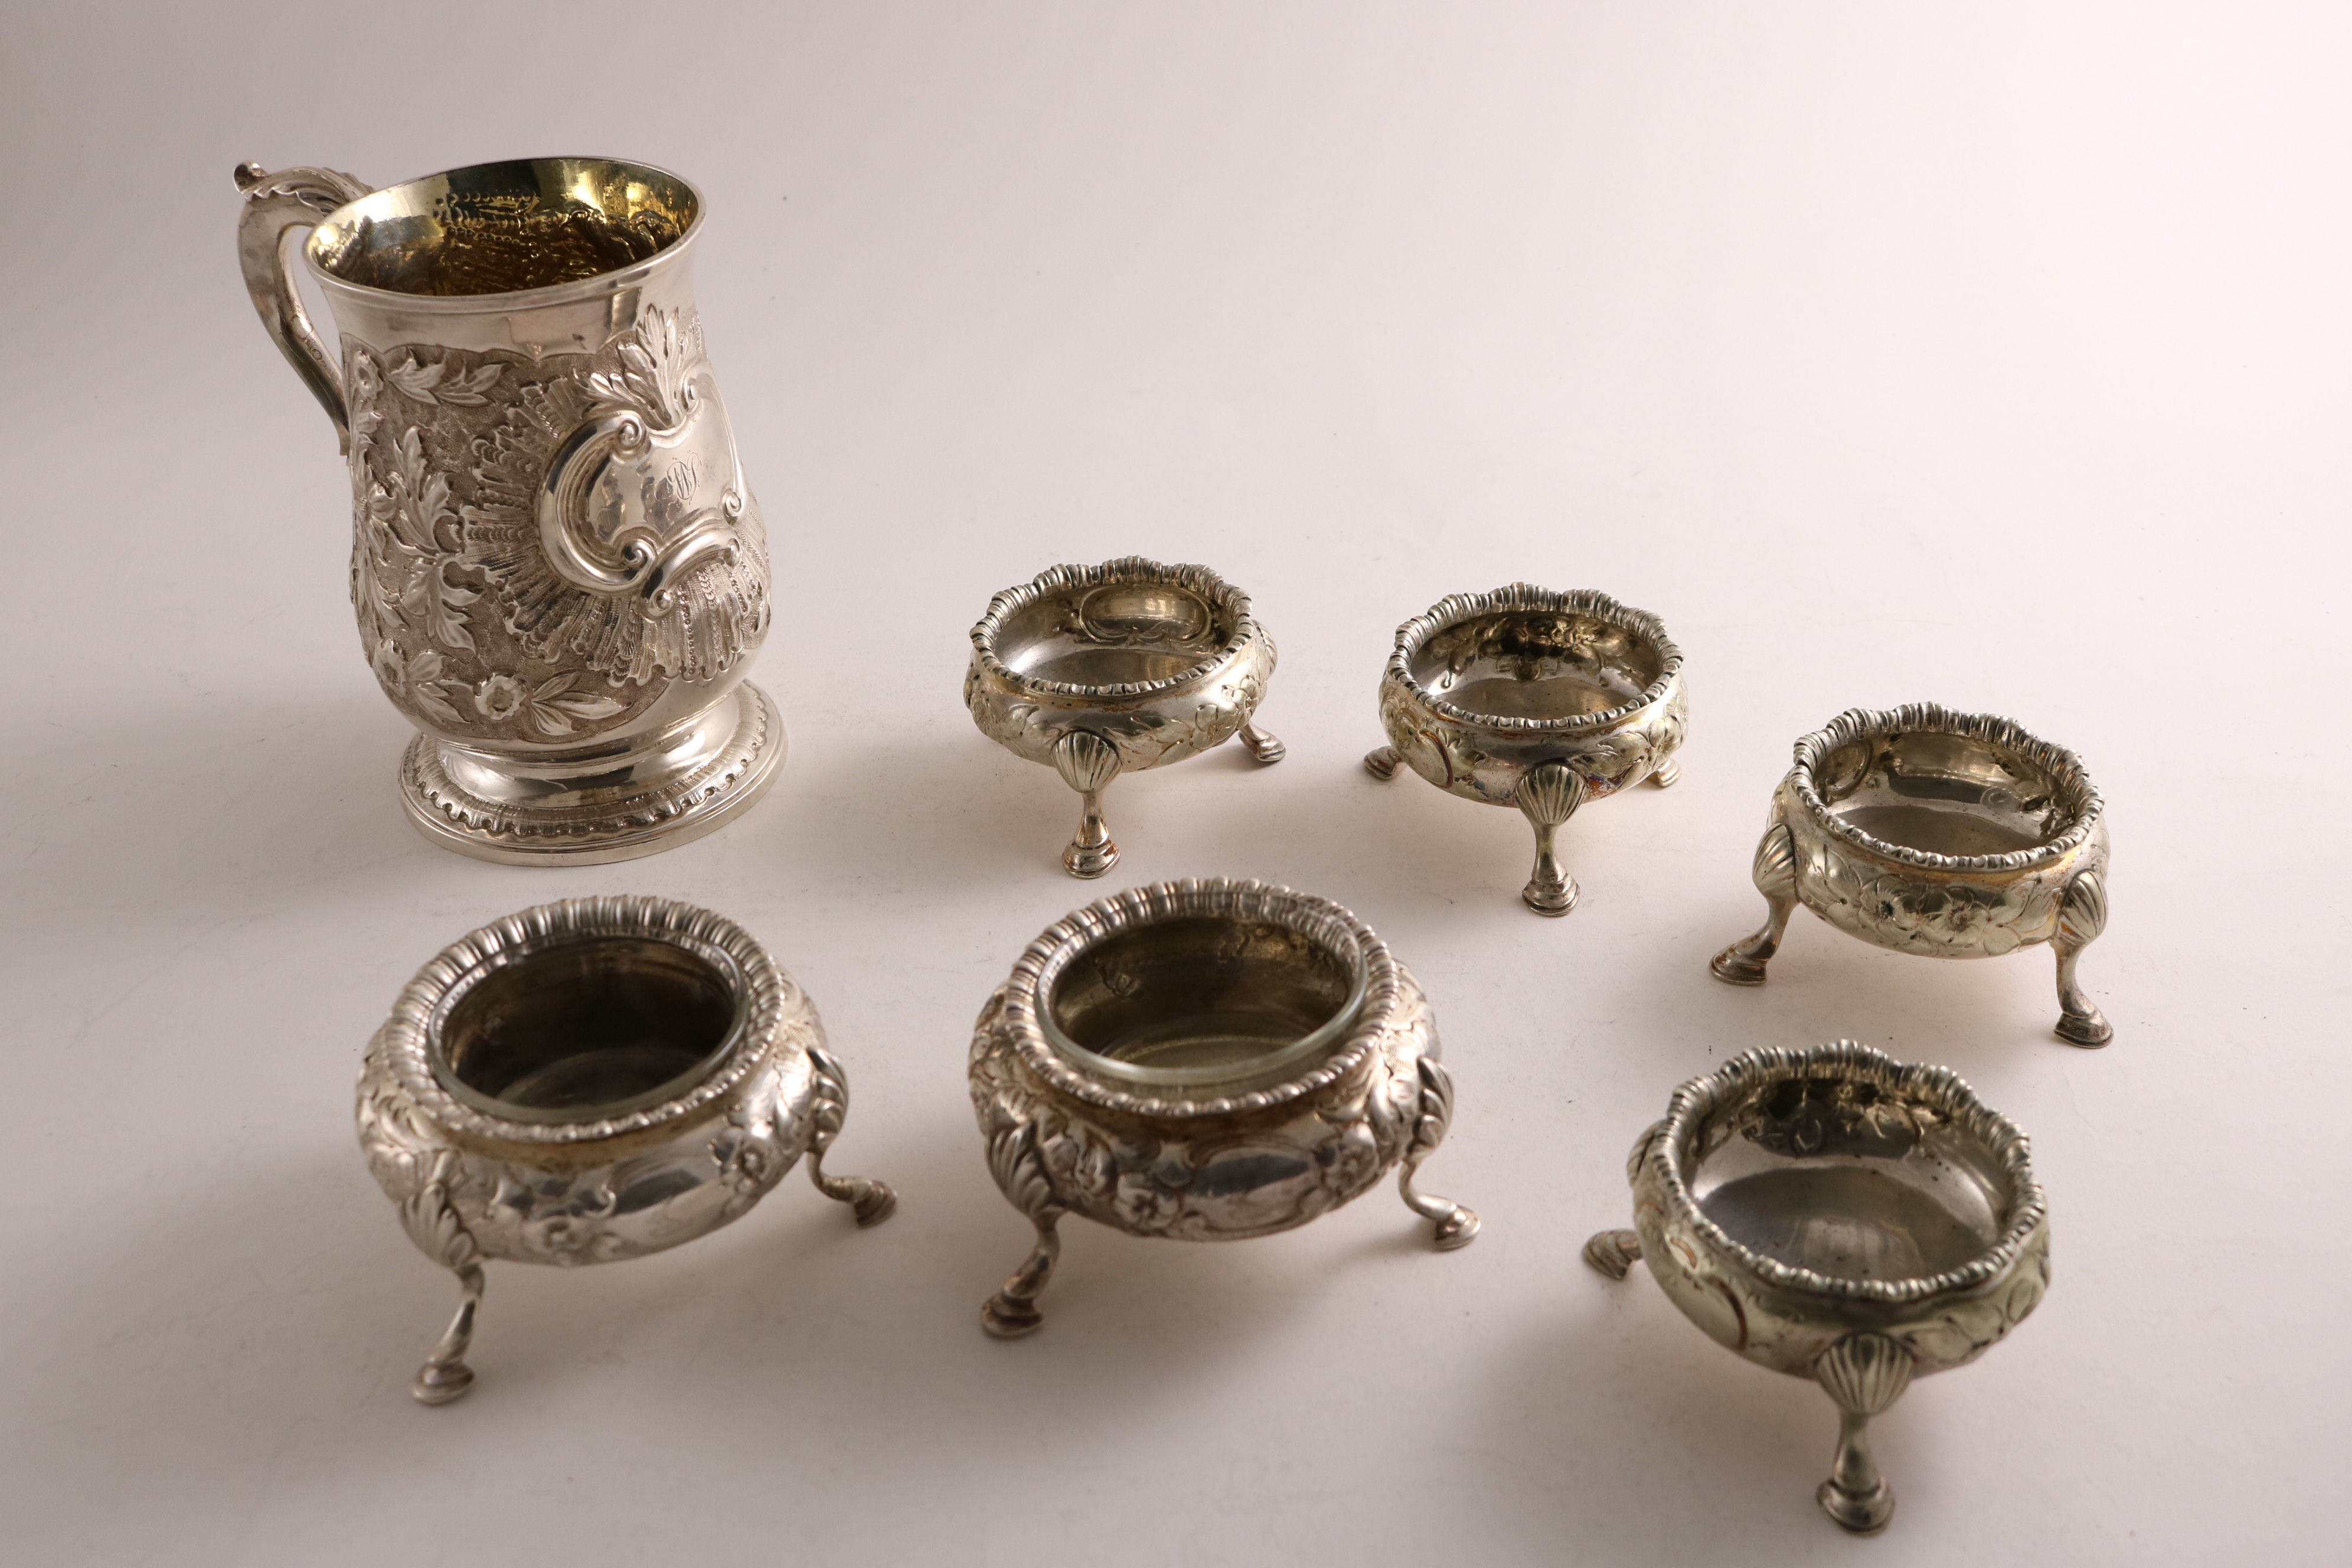 A GEORGE III SILVER MUG of baluster form with later-embossed decoration, initialled, gilt